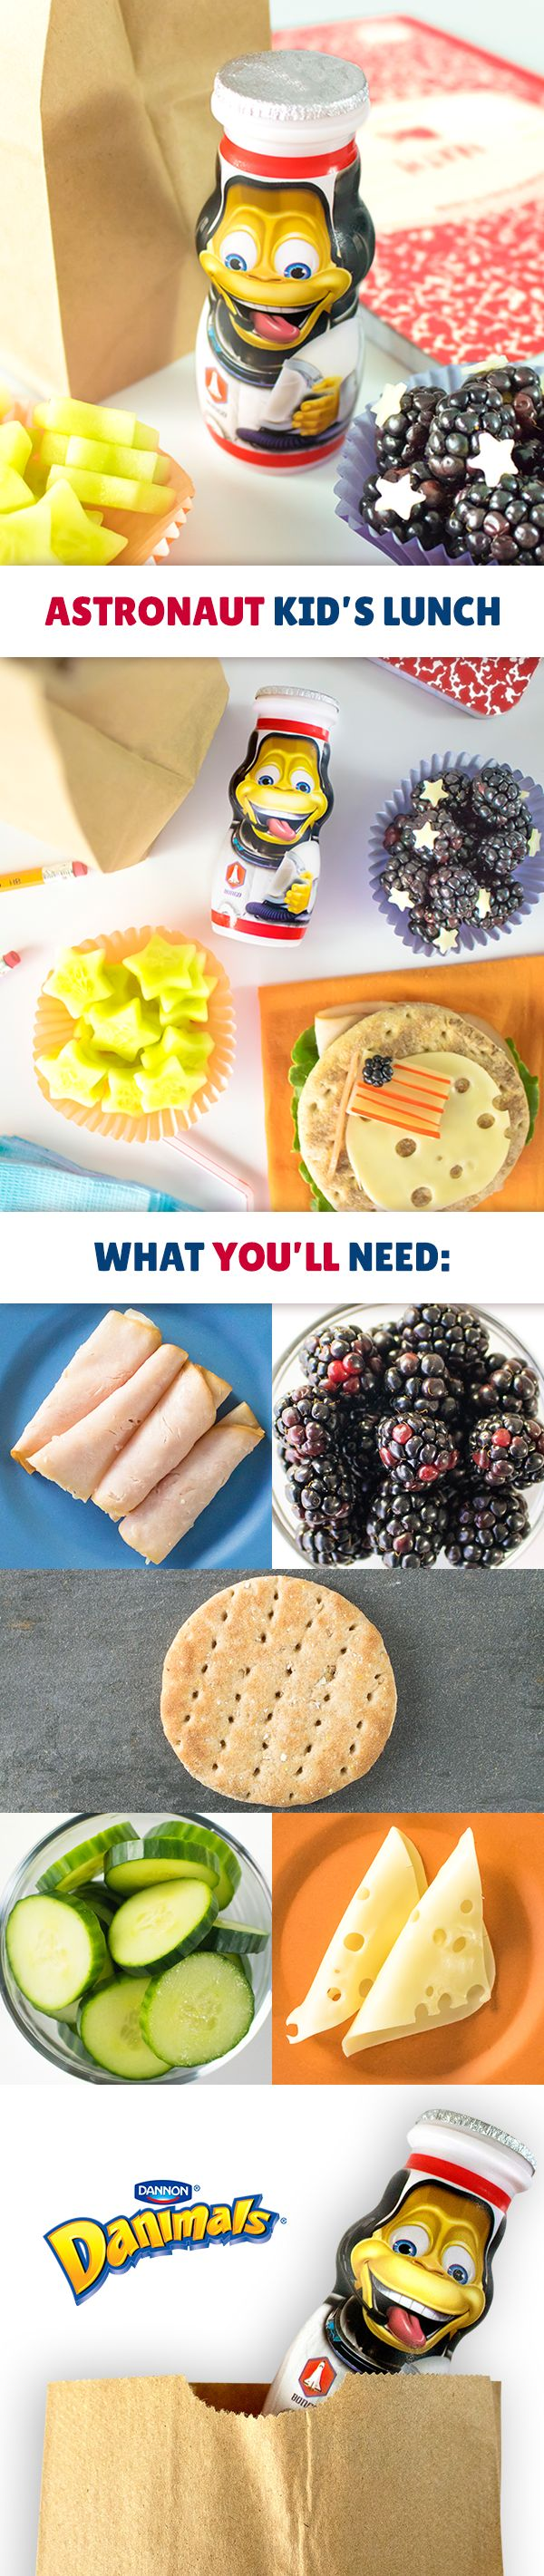 Transform a boring turkey and Swiss cheese sandwich into an out-of-this-world kid's lunch. Cut turkey and cheese into circles and layer on a whole wheat pita. Using a knife or a cookie cutter, make stars out of cucumbers and cheese slices and add to blackberries. Create a moon landing flag with cheese, red pepper or apple strips and blackberries. Don't forget to add an Astronaut Adventure Series Danimals® Yogurt Smoothie to complete this unique, healthy lunch idea.